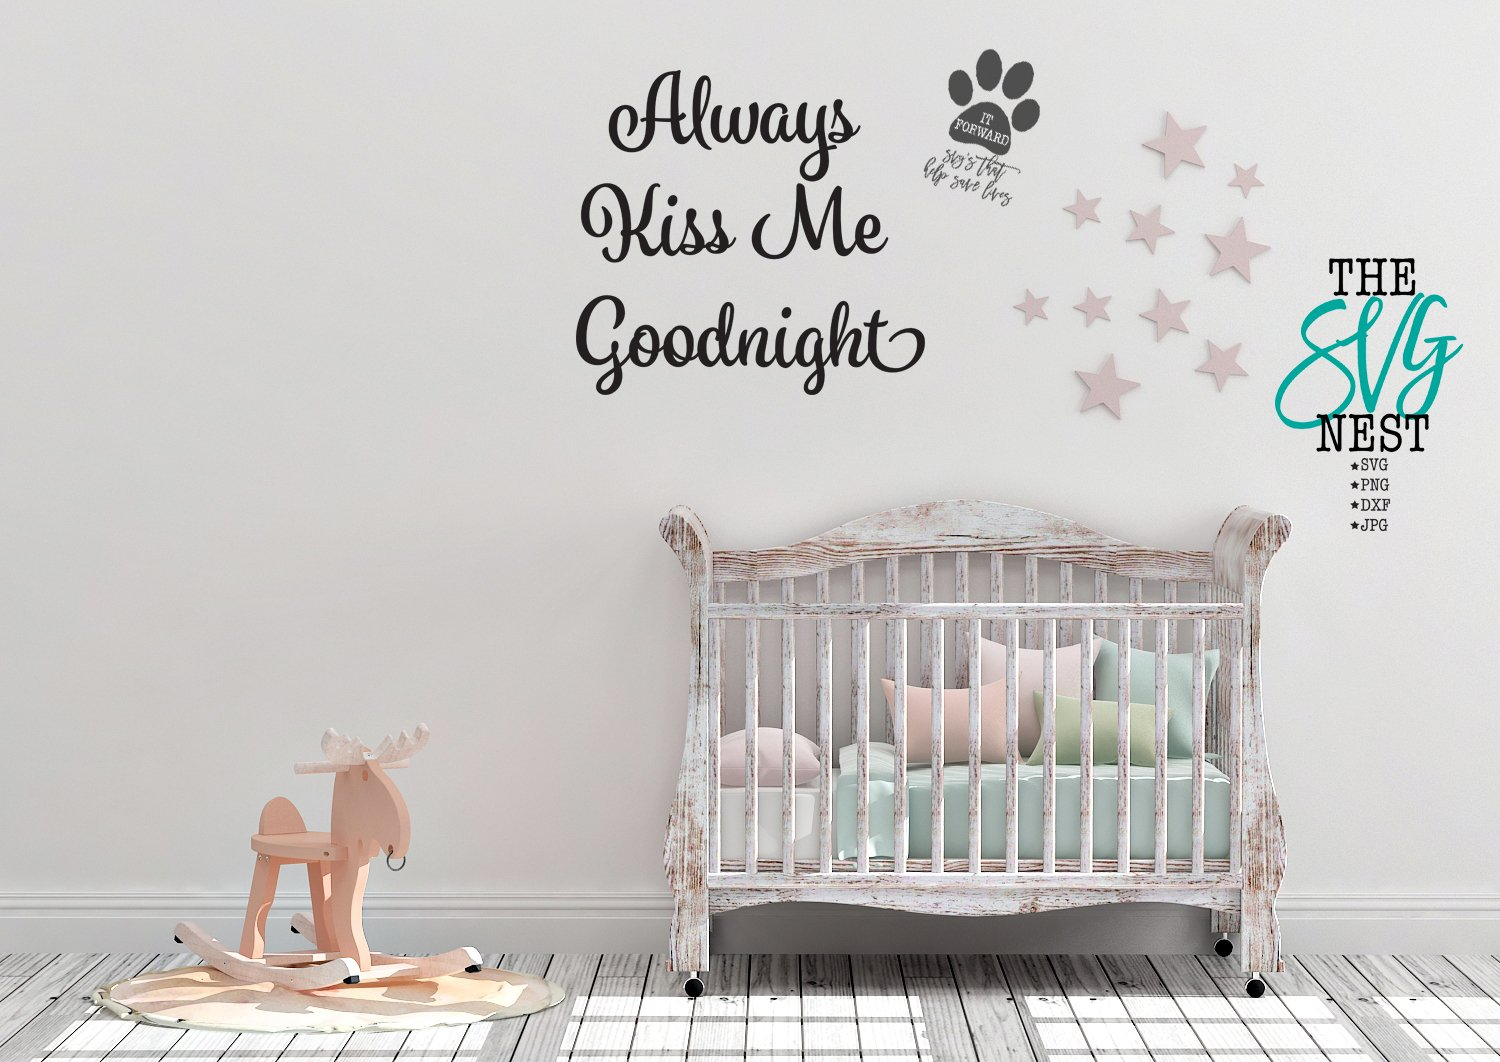 Always Kiss Me Goodnight Cut Files Pre Designed Illustrator Graphics Creative Market